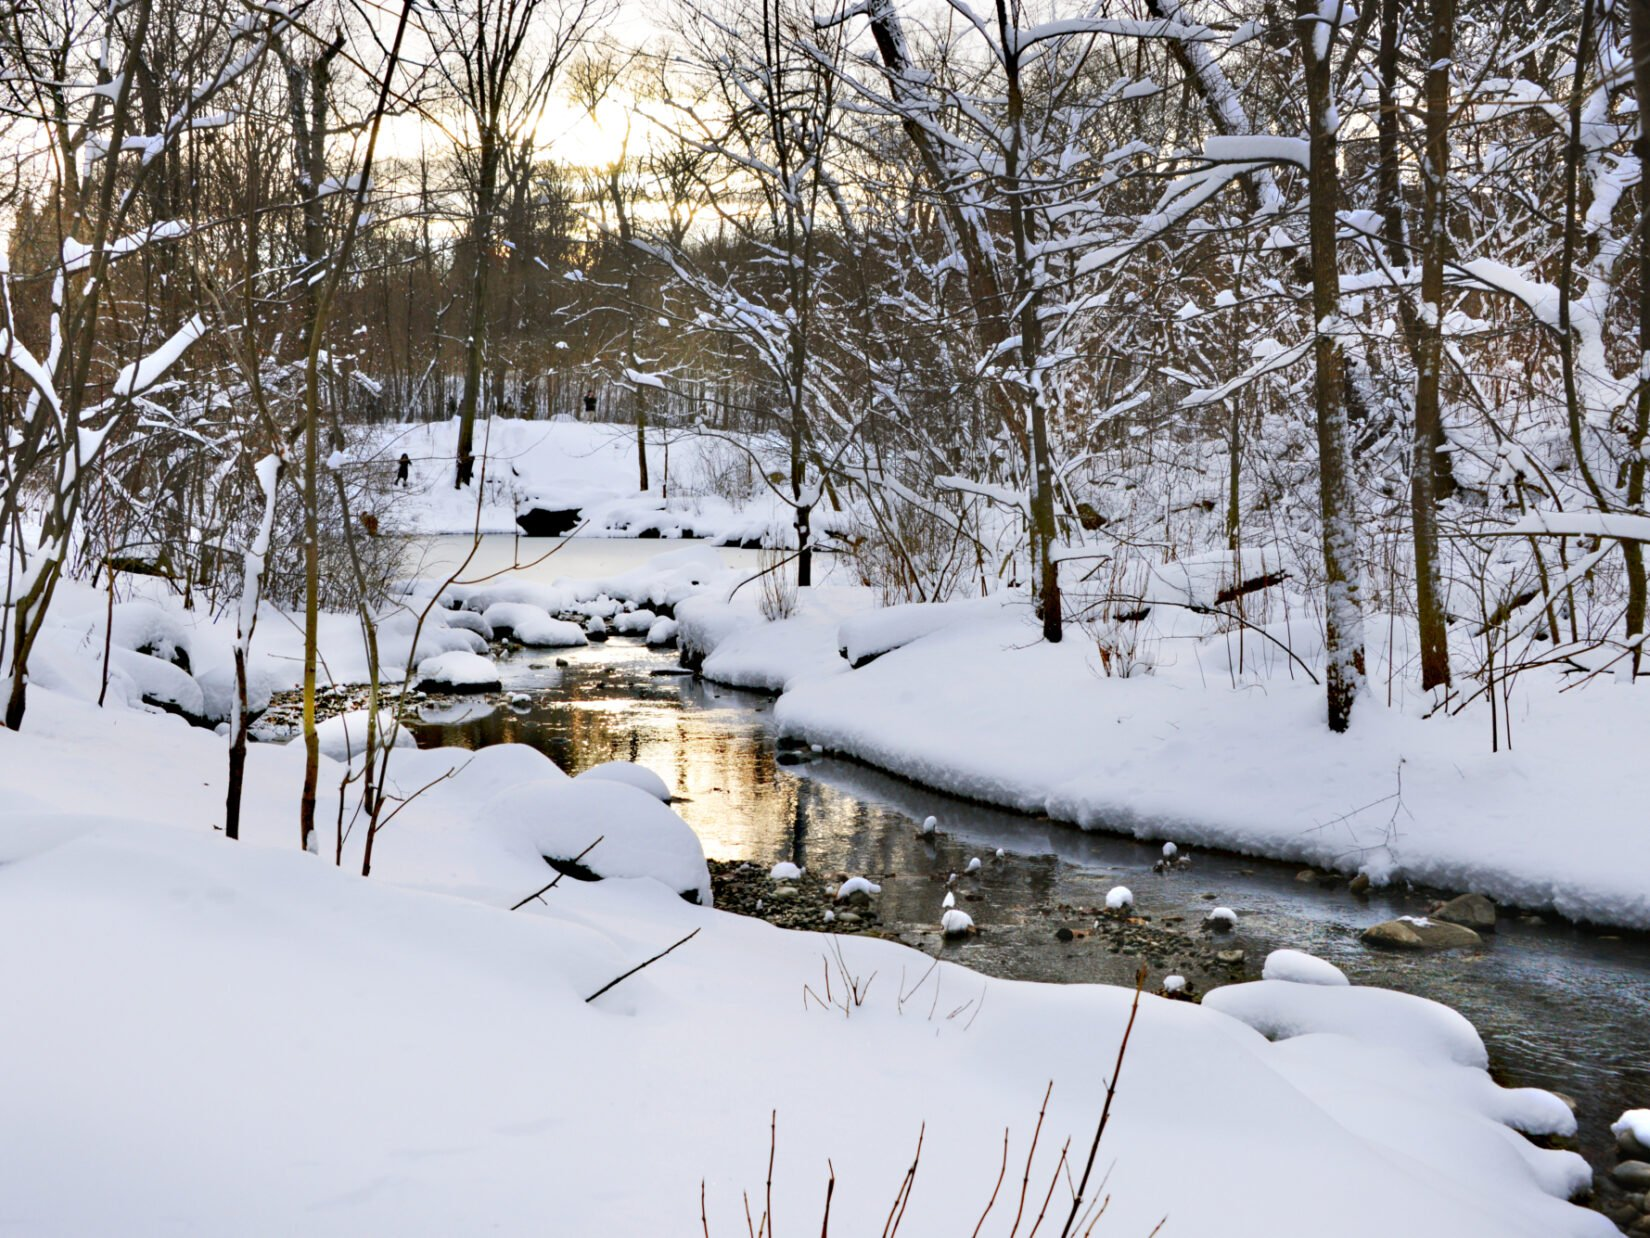 A stream winds through the snow-covered North Woods